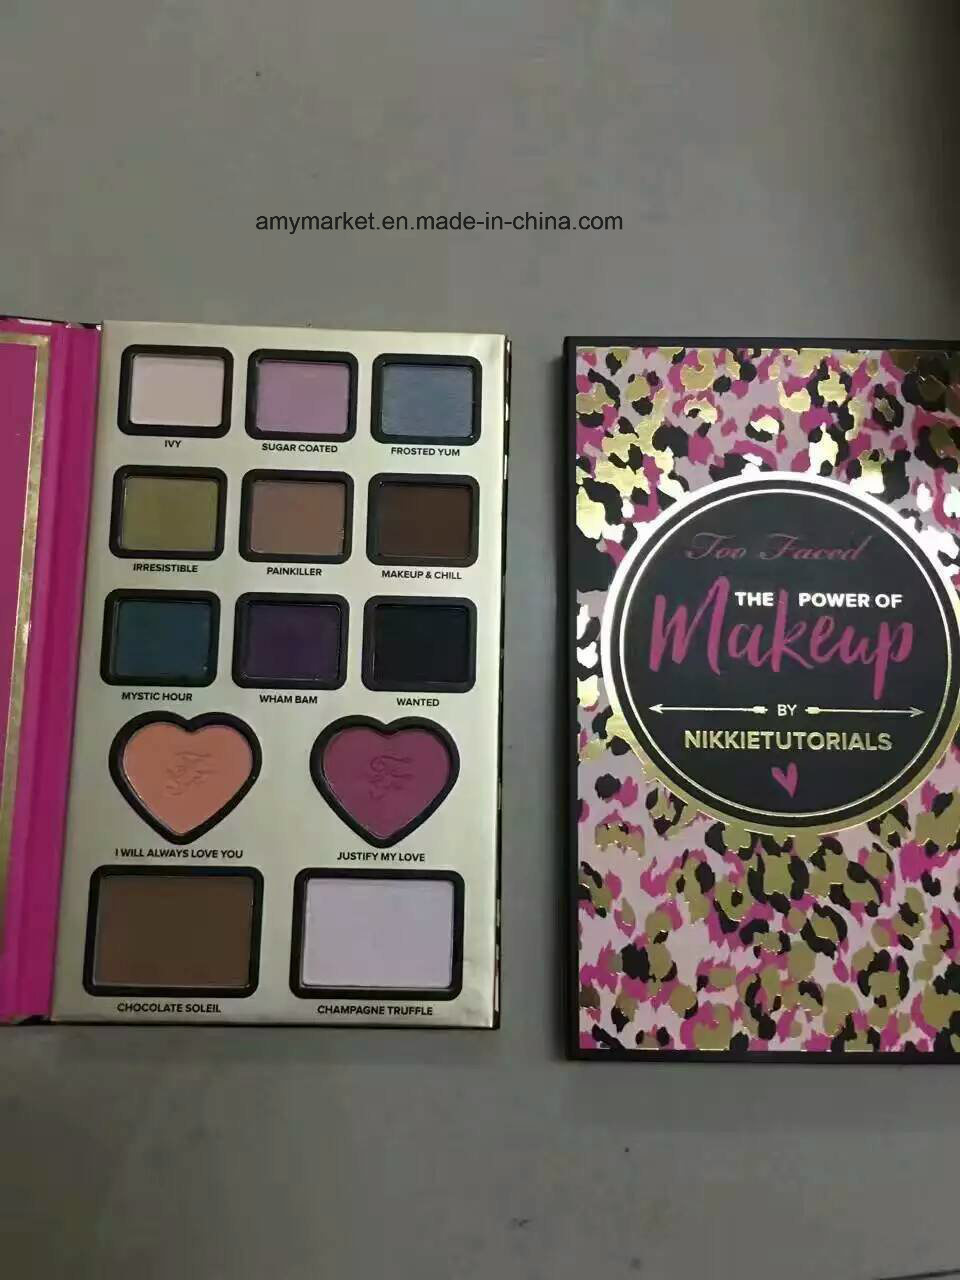 Too Faced The Power of Makeup by Nikkie Tutorials Makeup Eyeshadow Palette 13 Color with Blusher